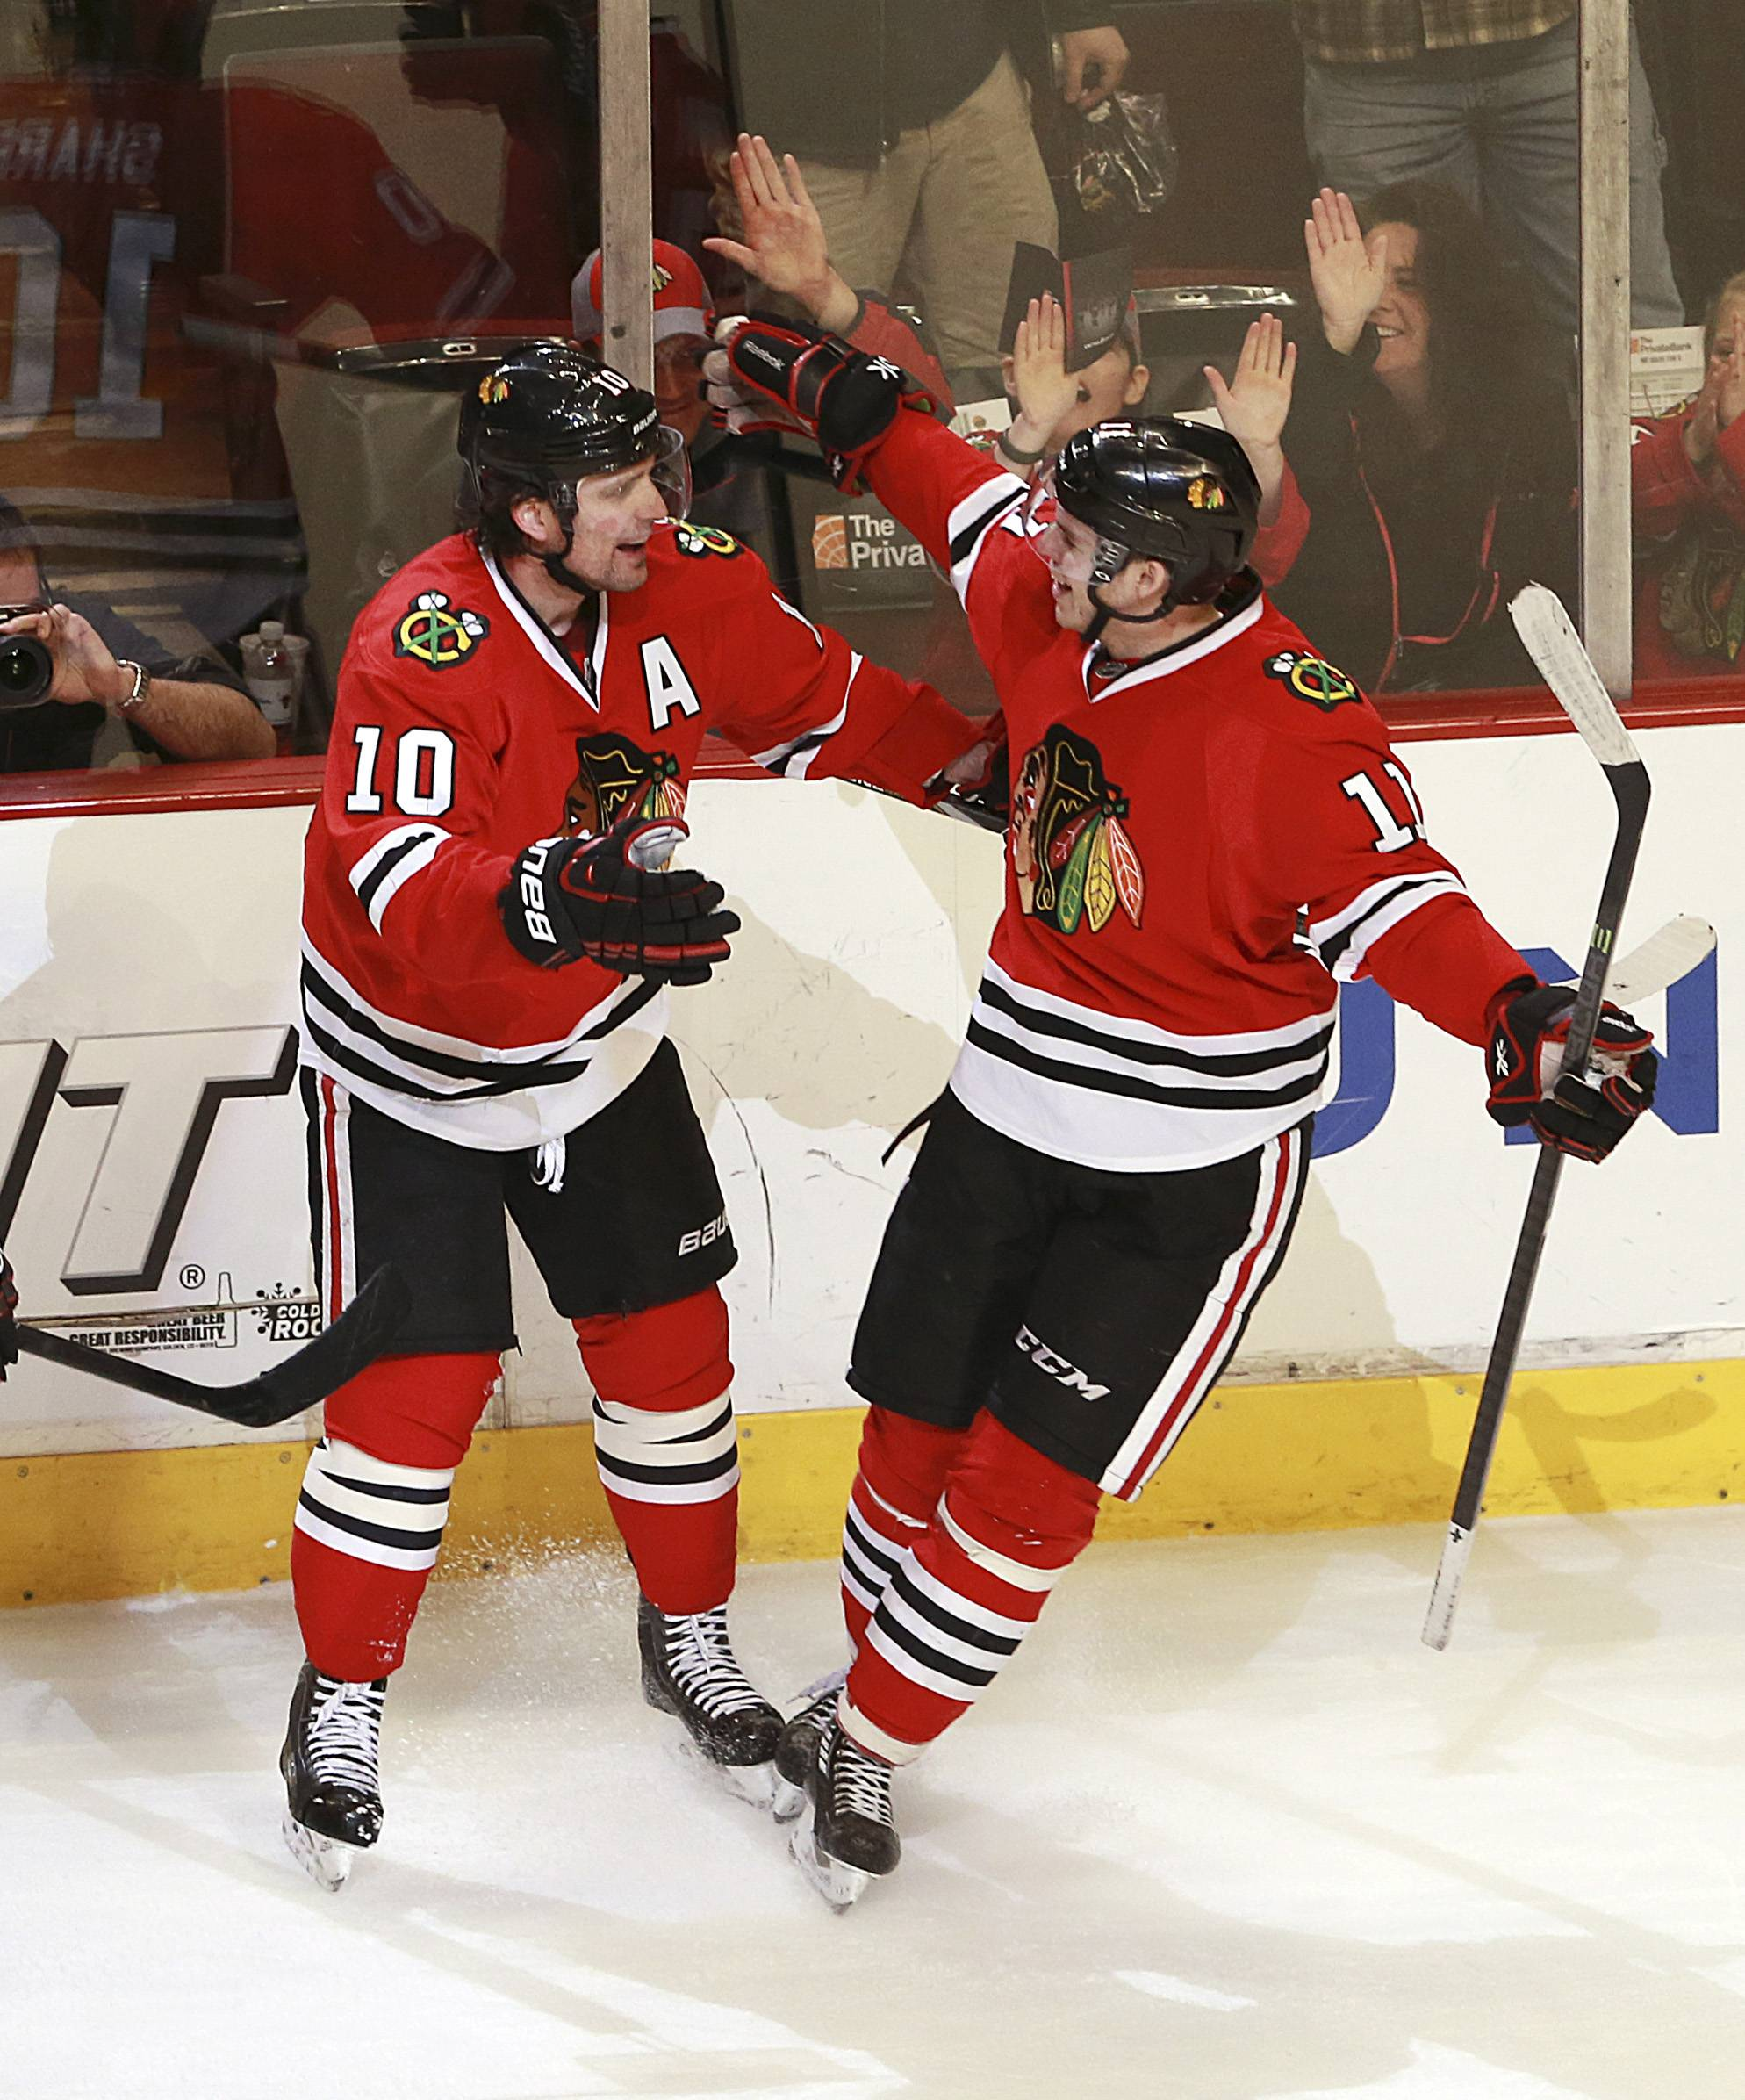 Morin sparks Blackhawks to victory